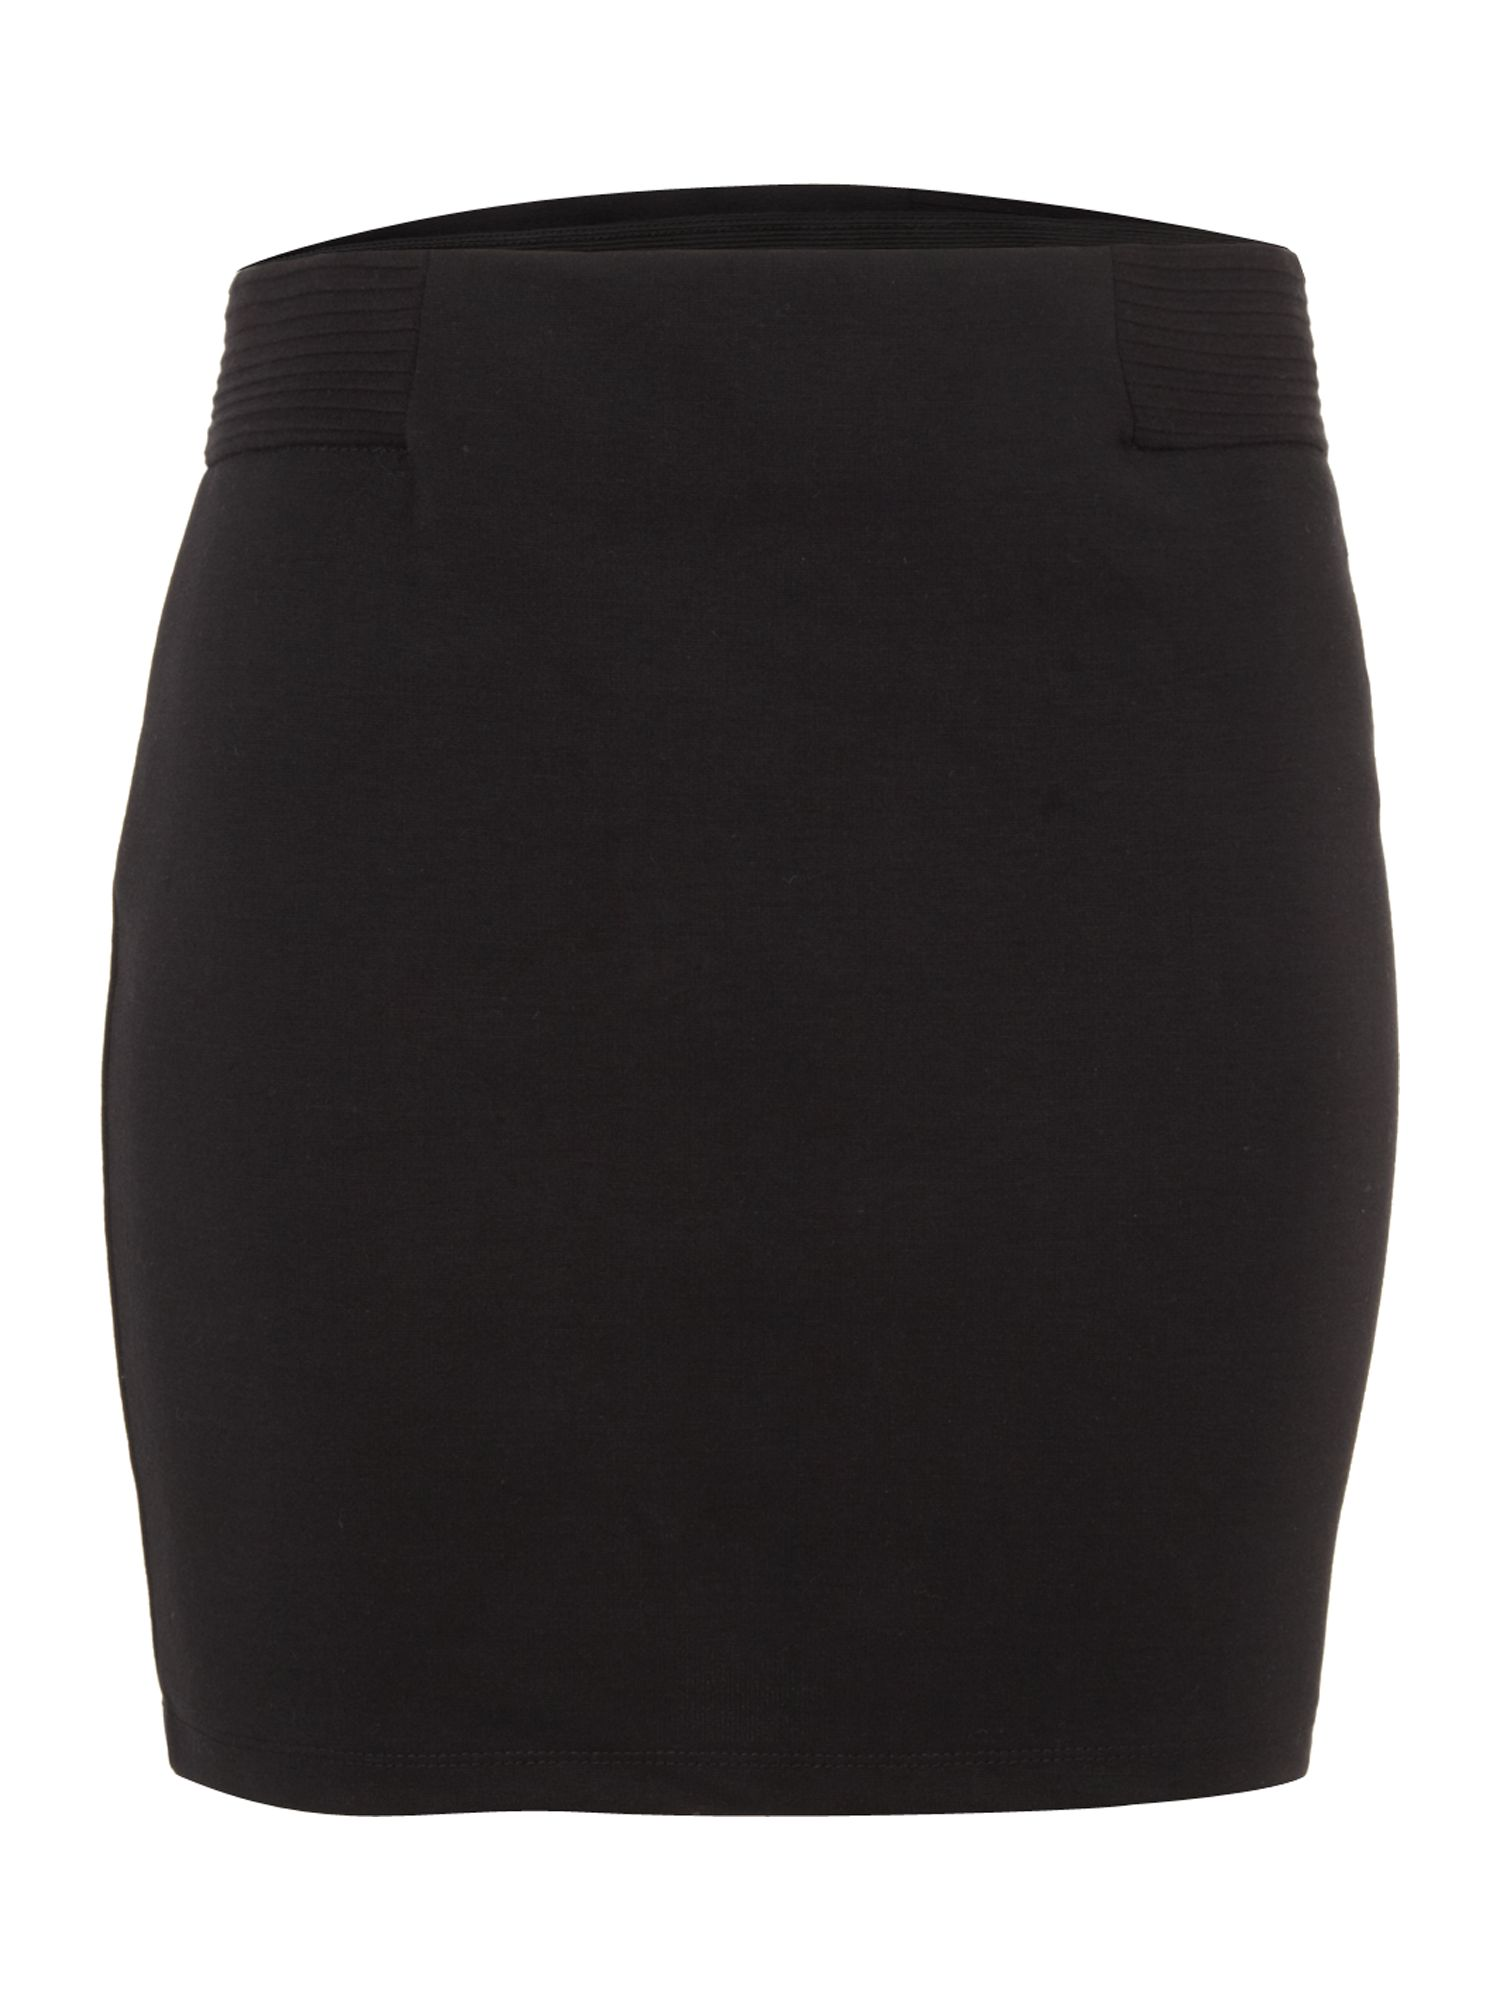 Black panel mini skirt